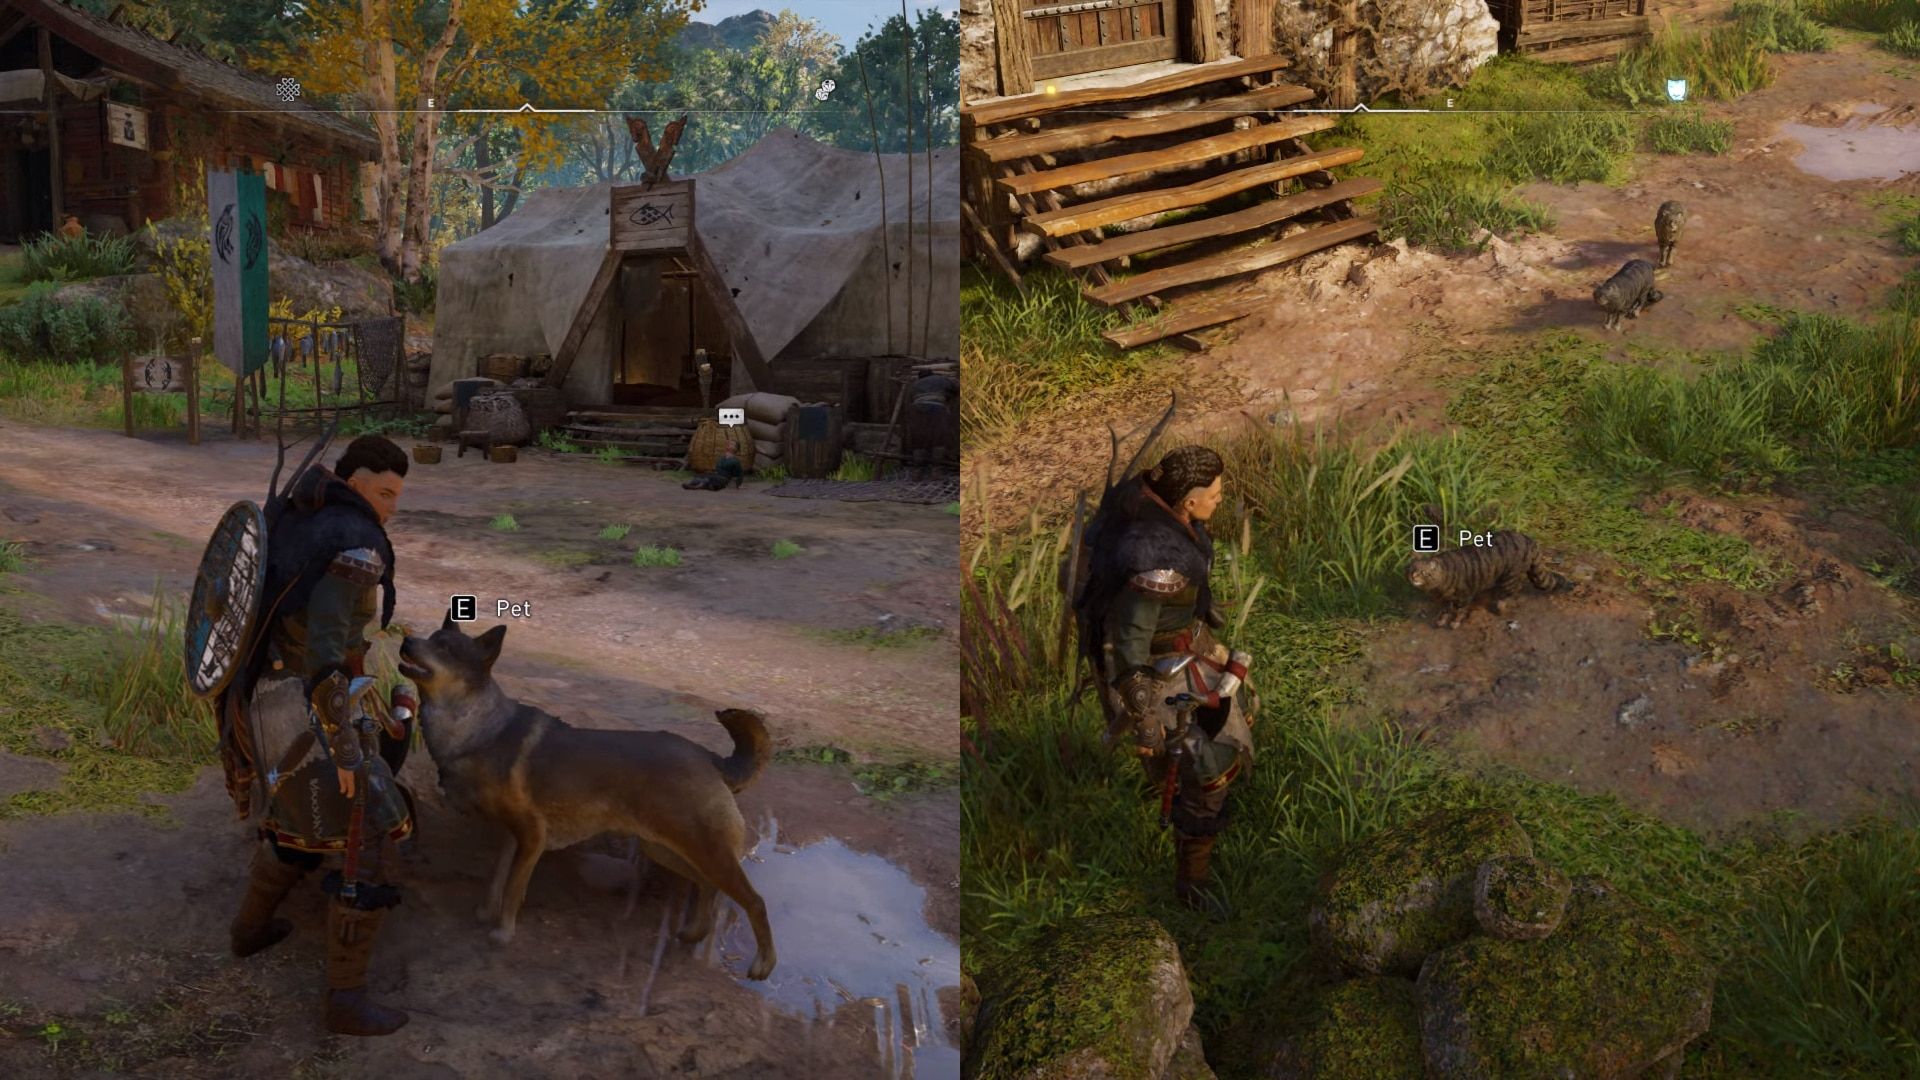 Prompt appearing above cats and dogs for petting in Assassin's Creed Valhalla.